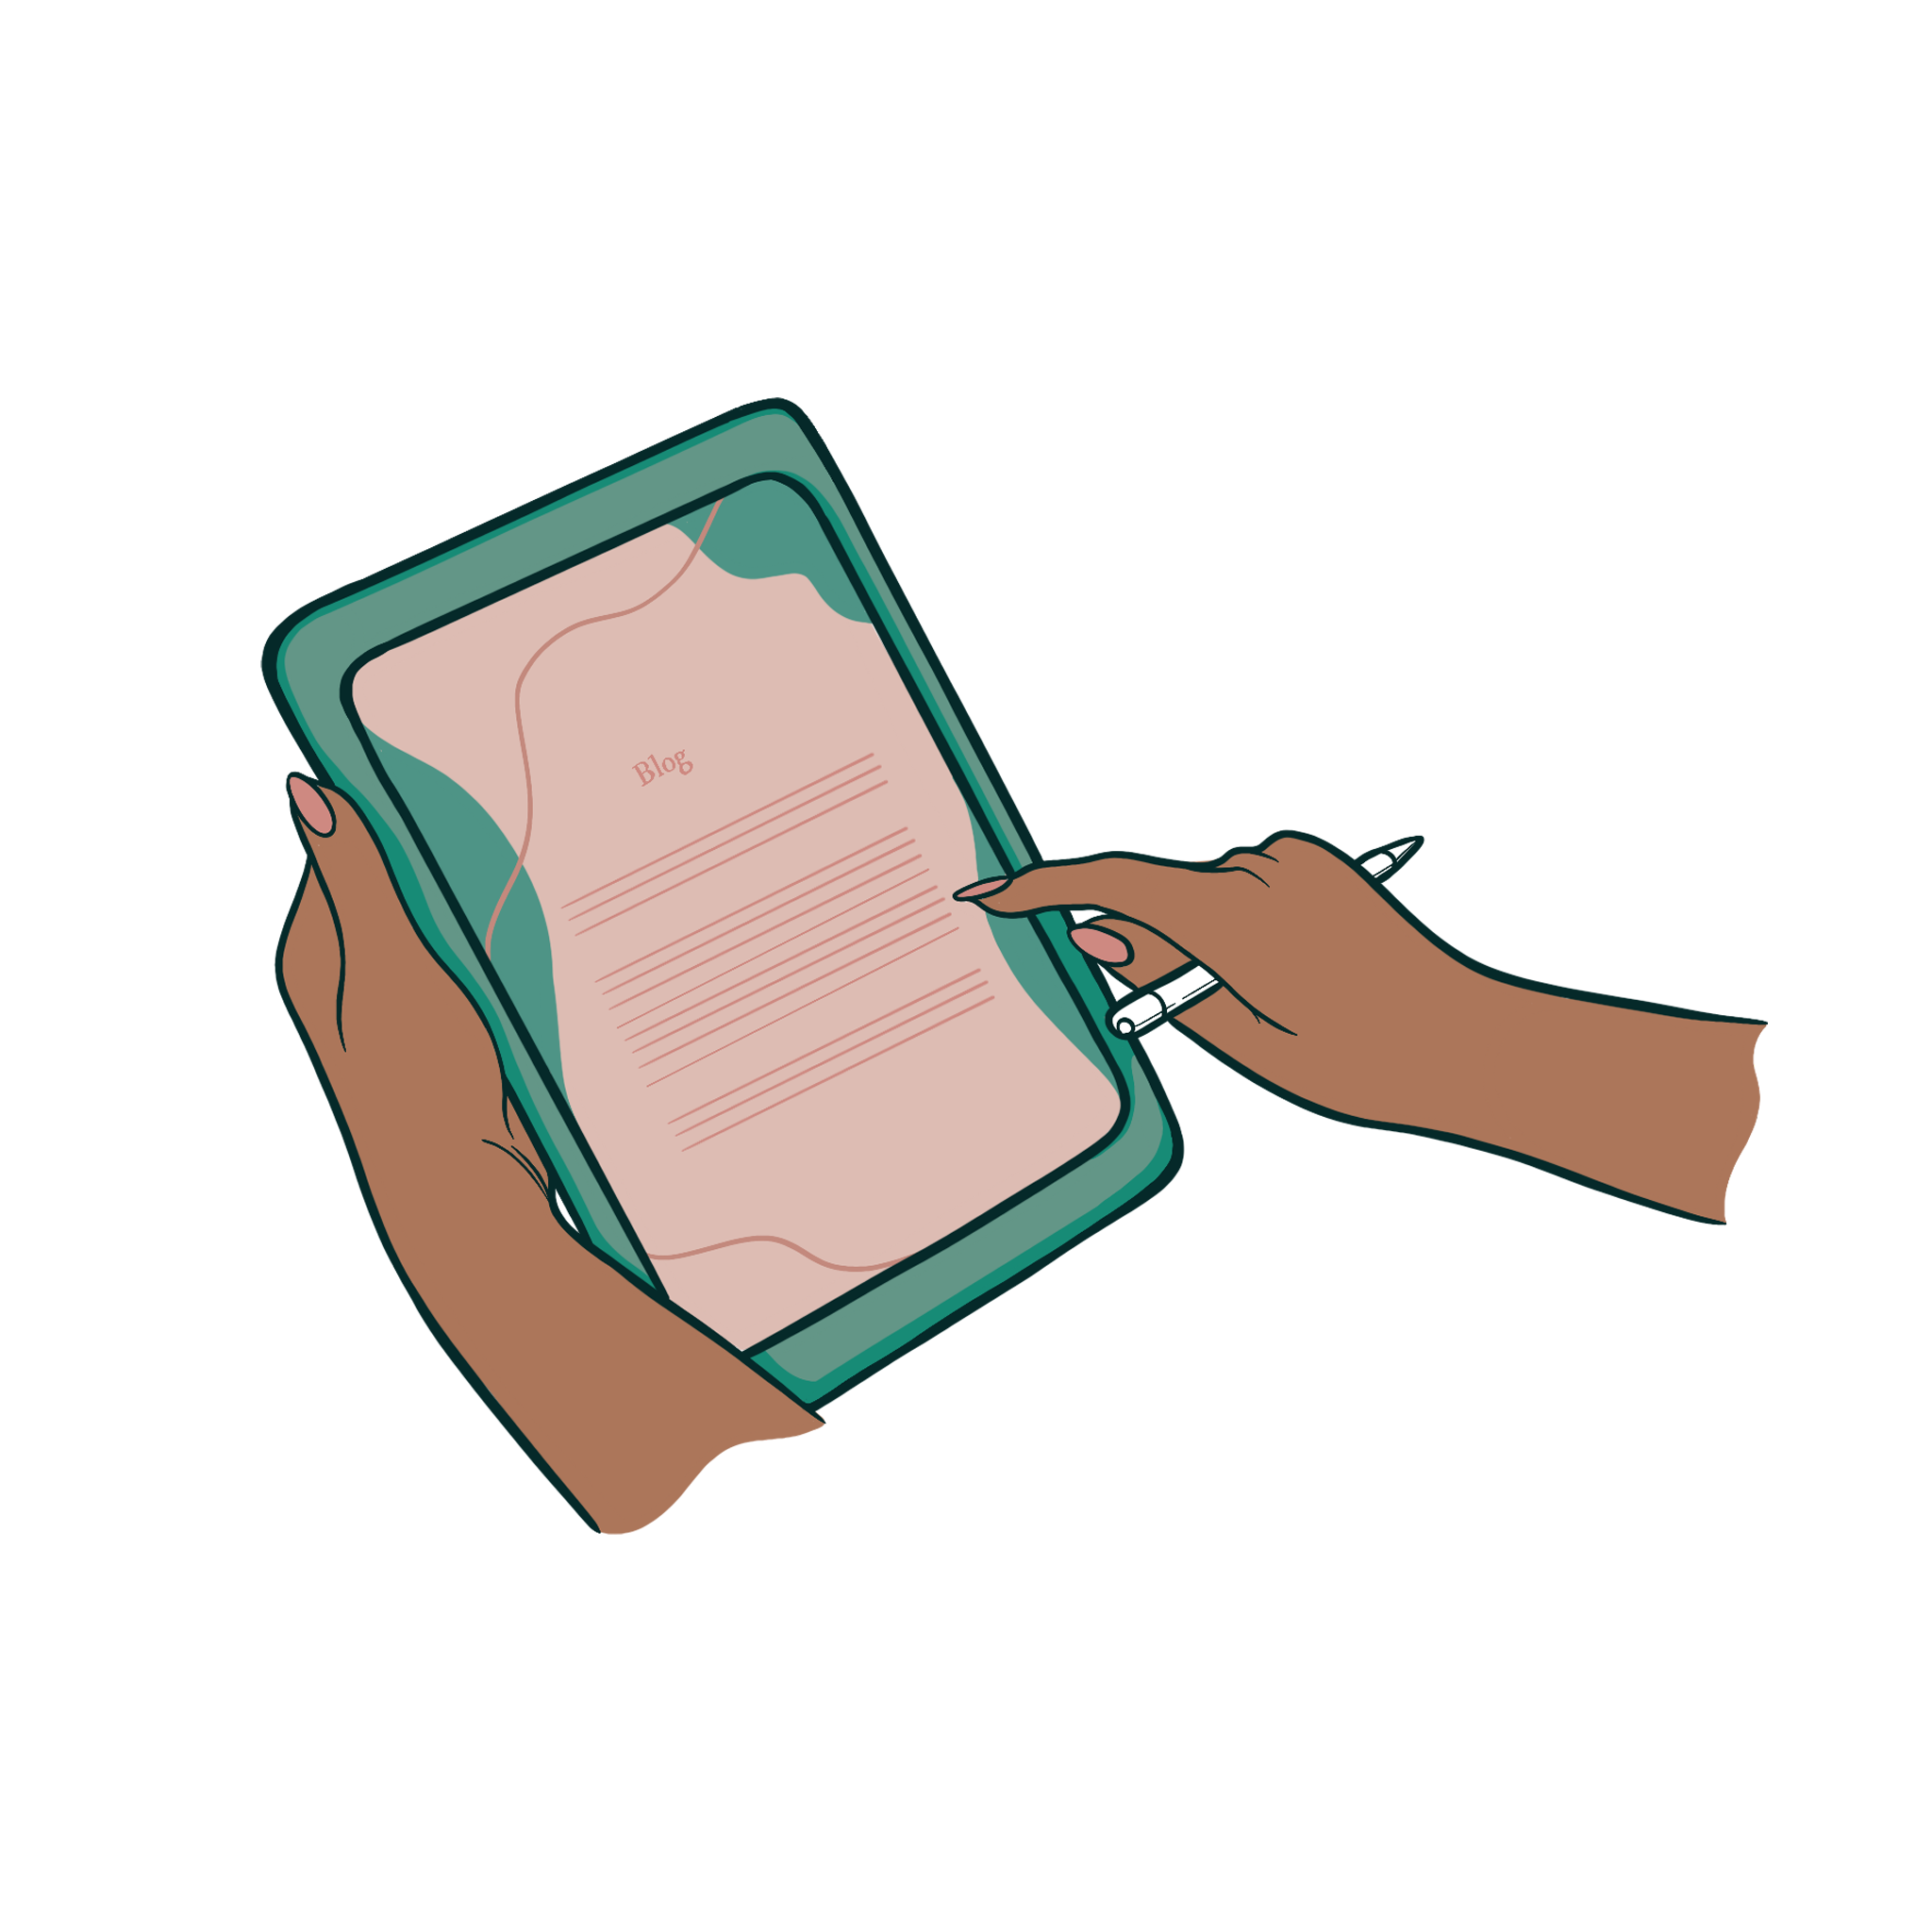 Illustration of person holding and using an uipad